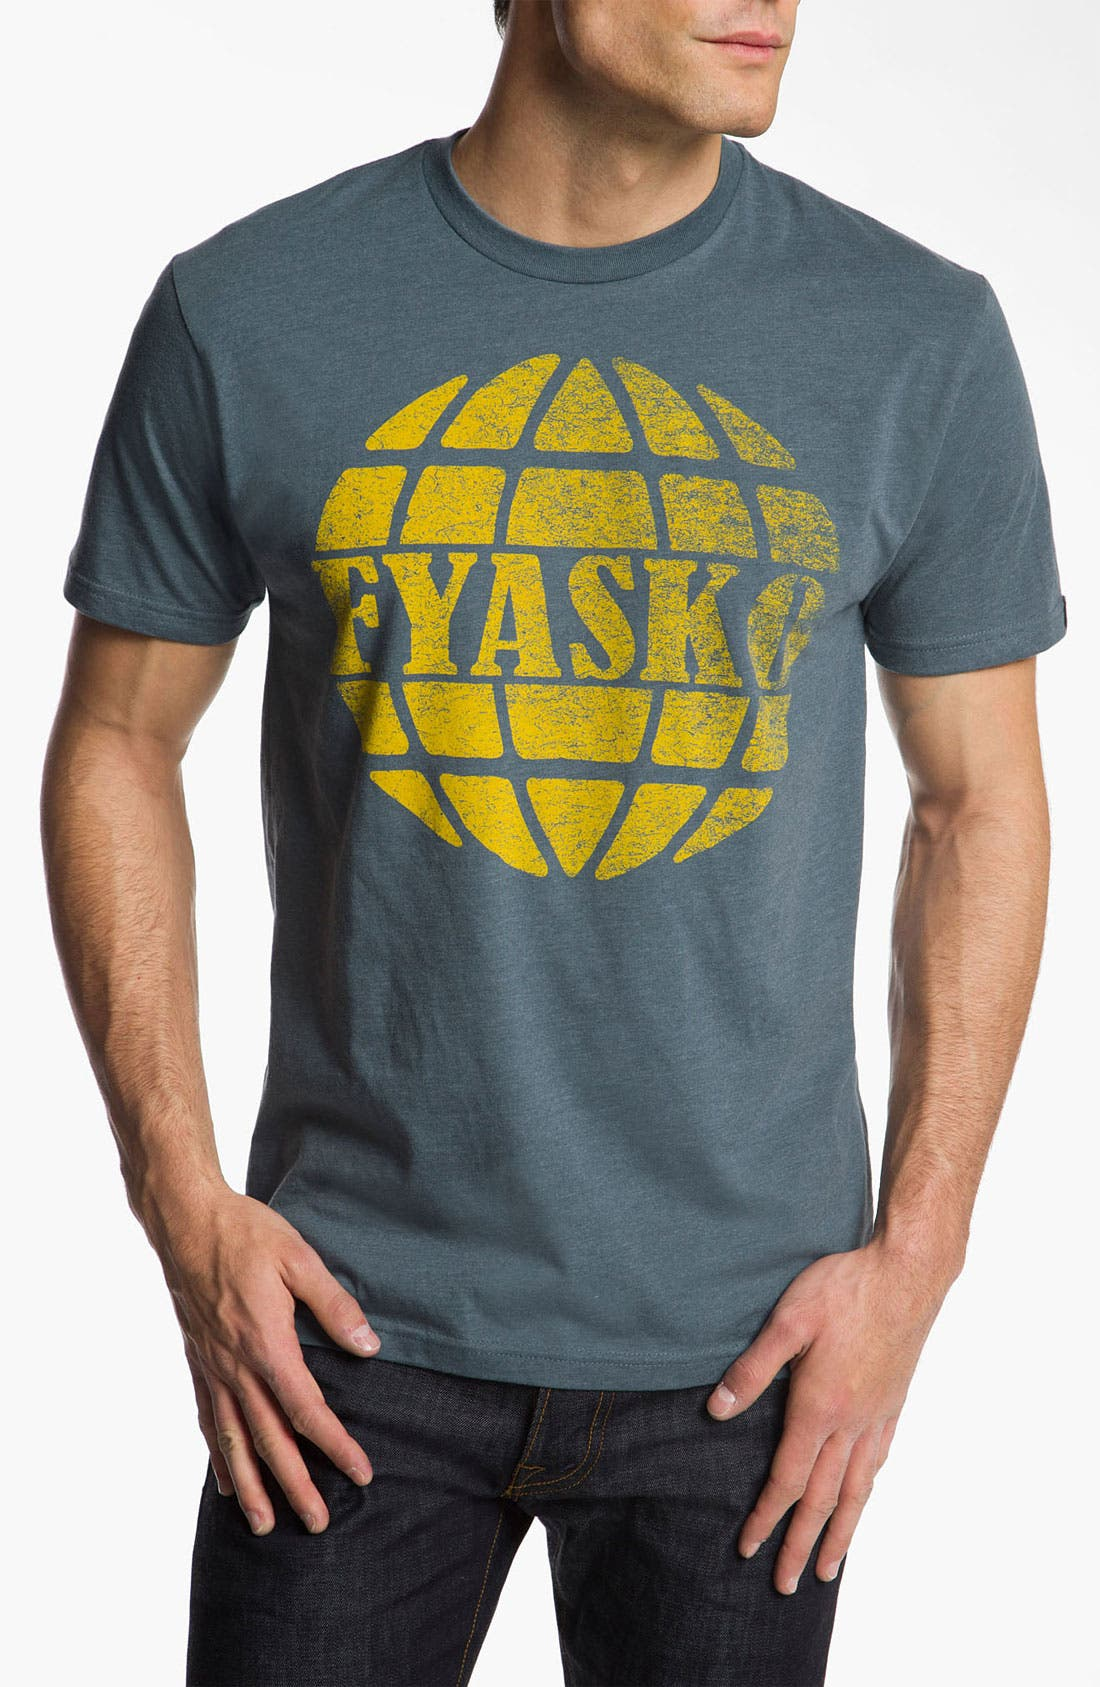 Main Image - Fyasko 'International' T-Shirt